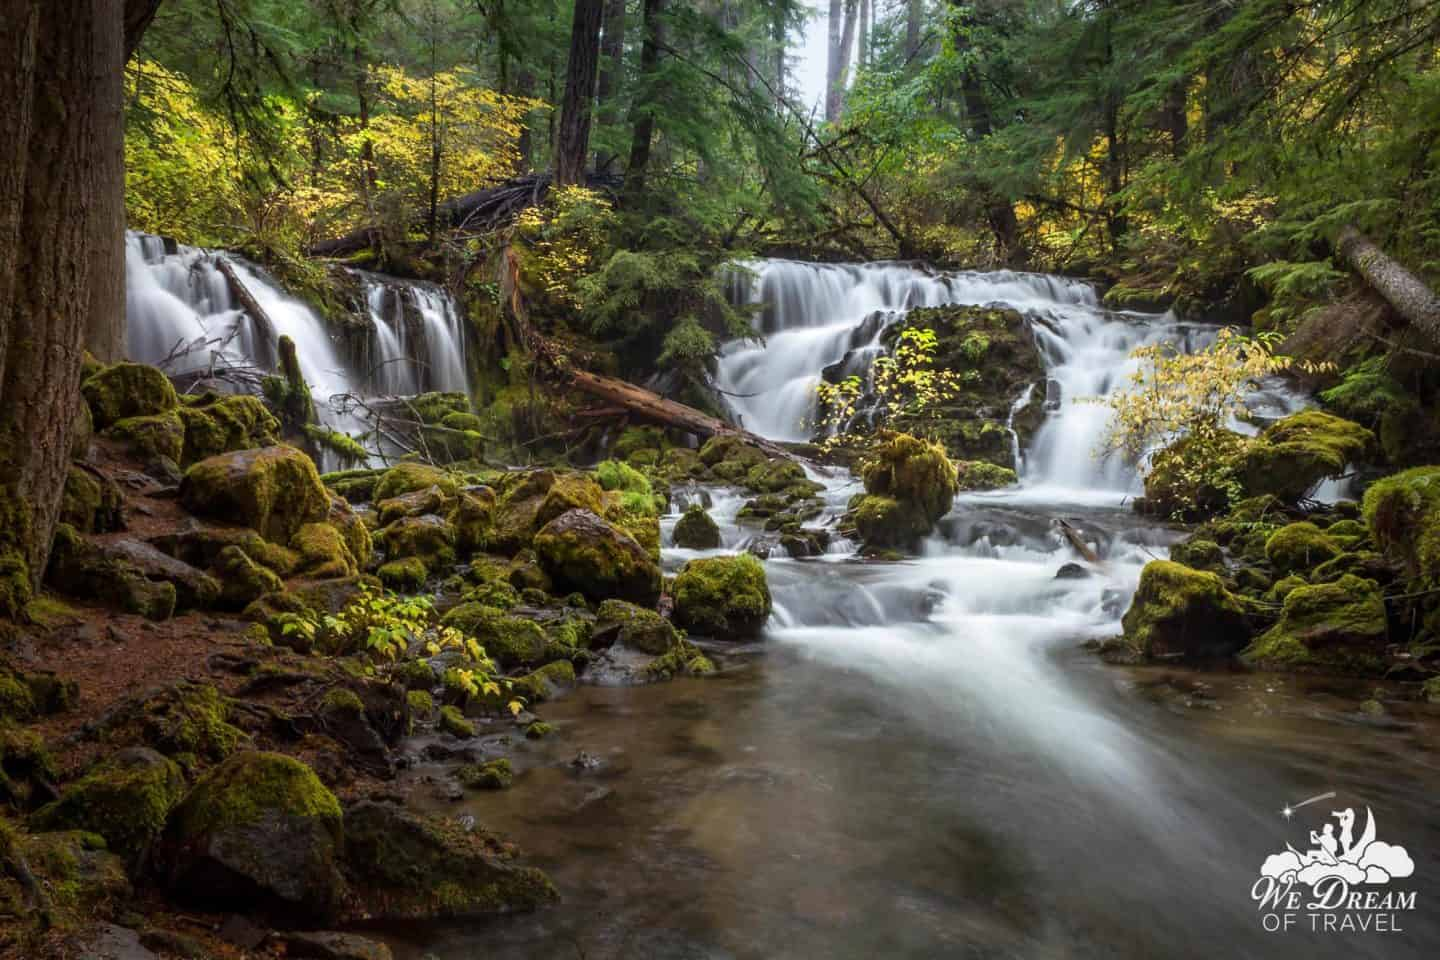 One of the smaller but best waterfalls in Oregon, Pearsony Falls is a local favorite.